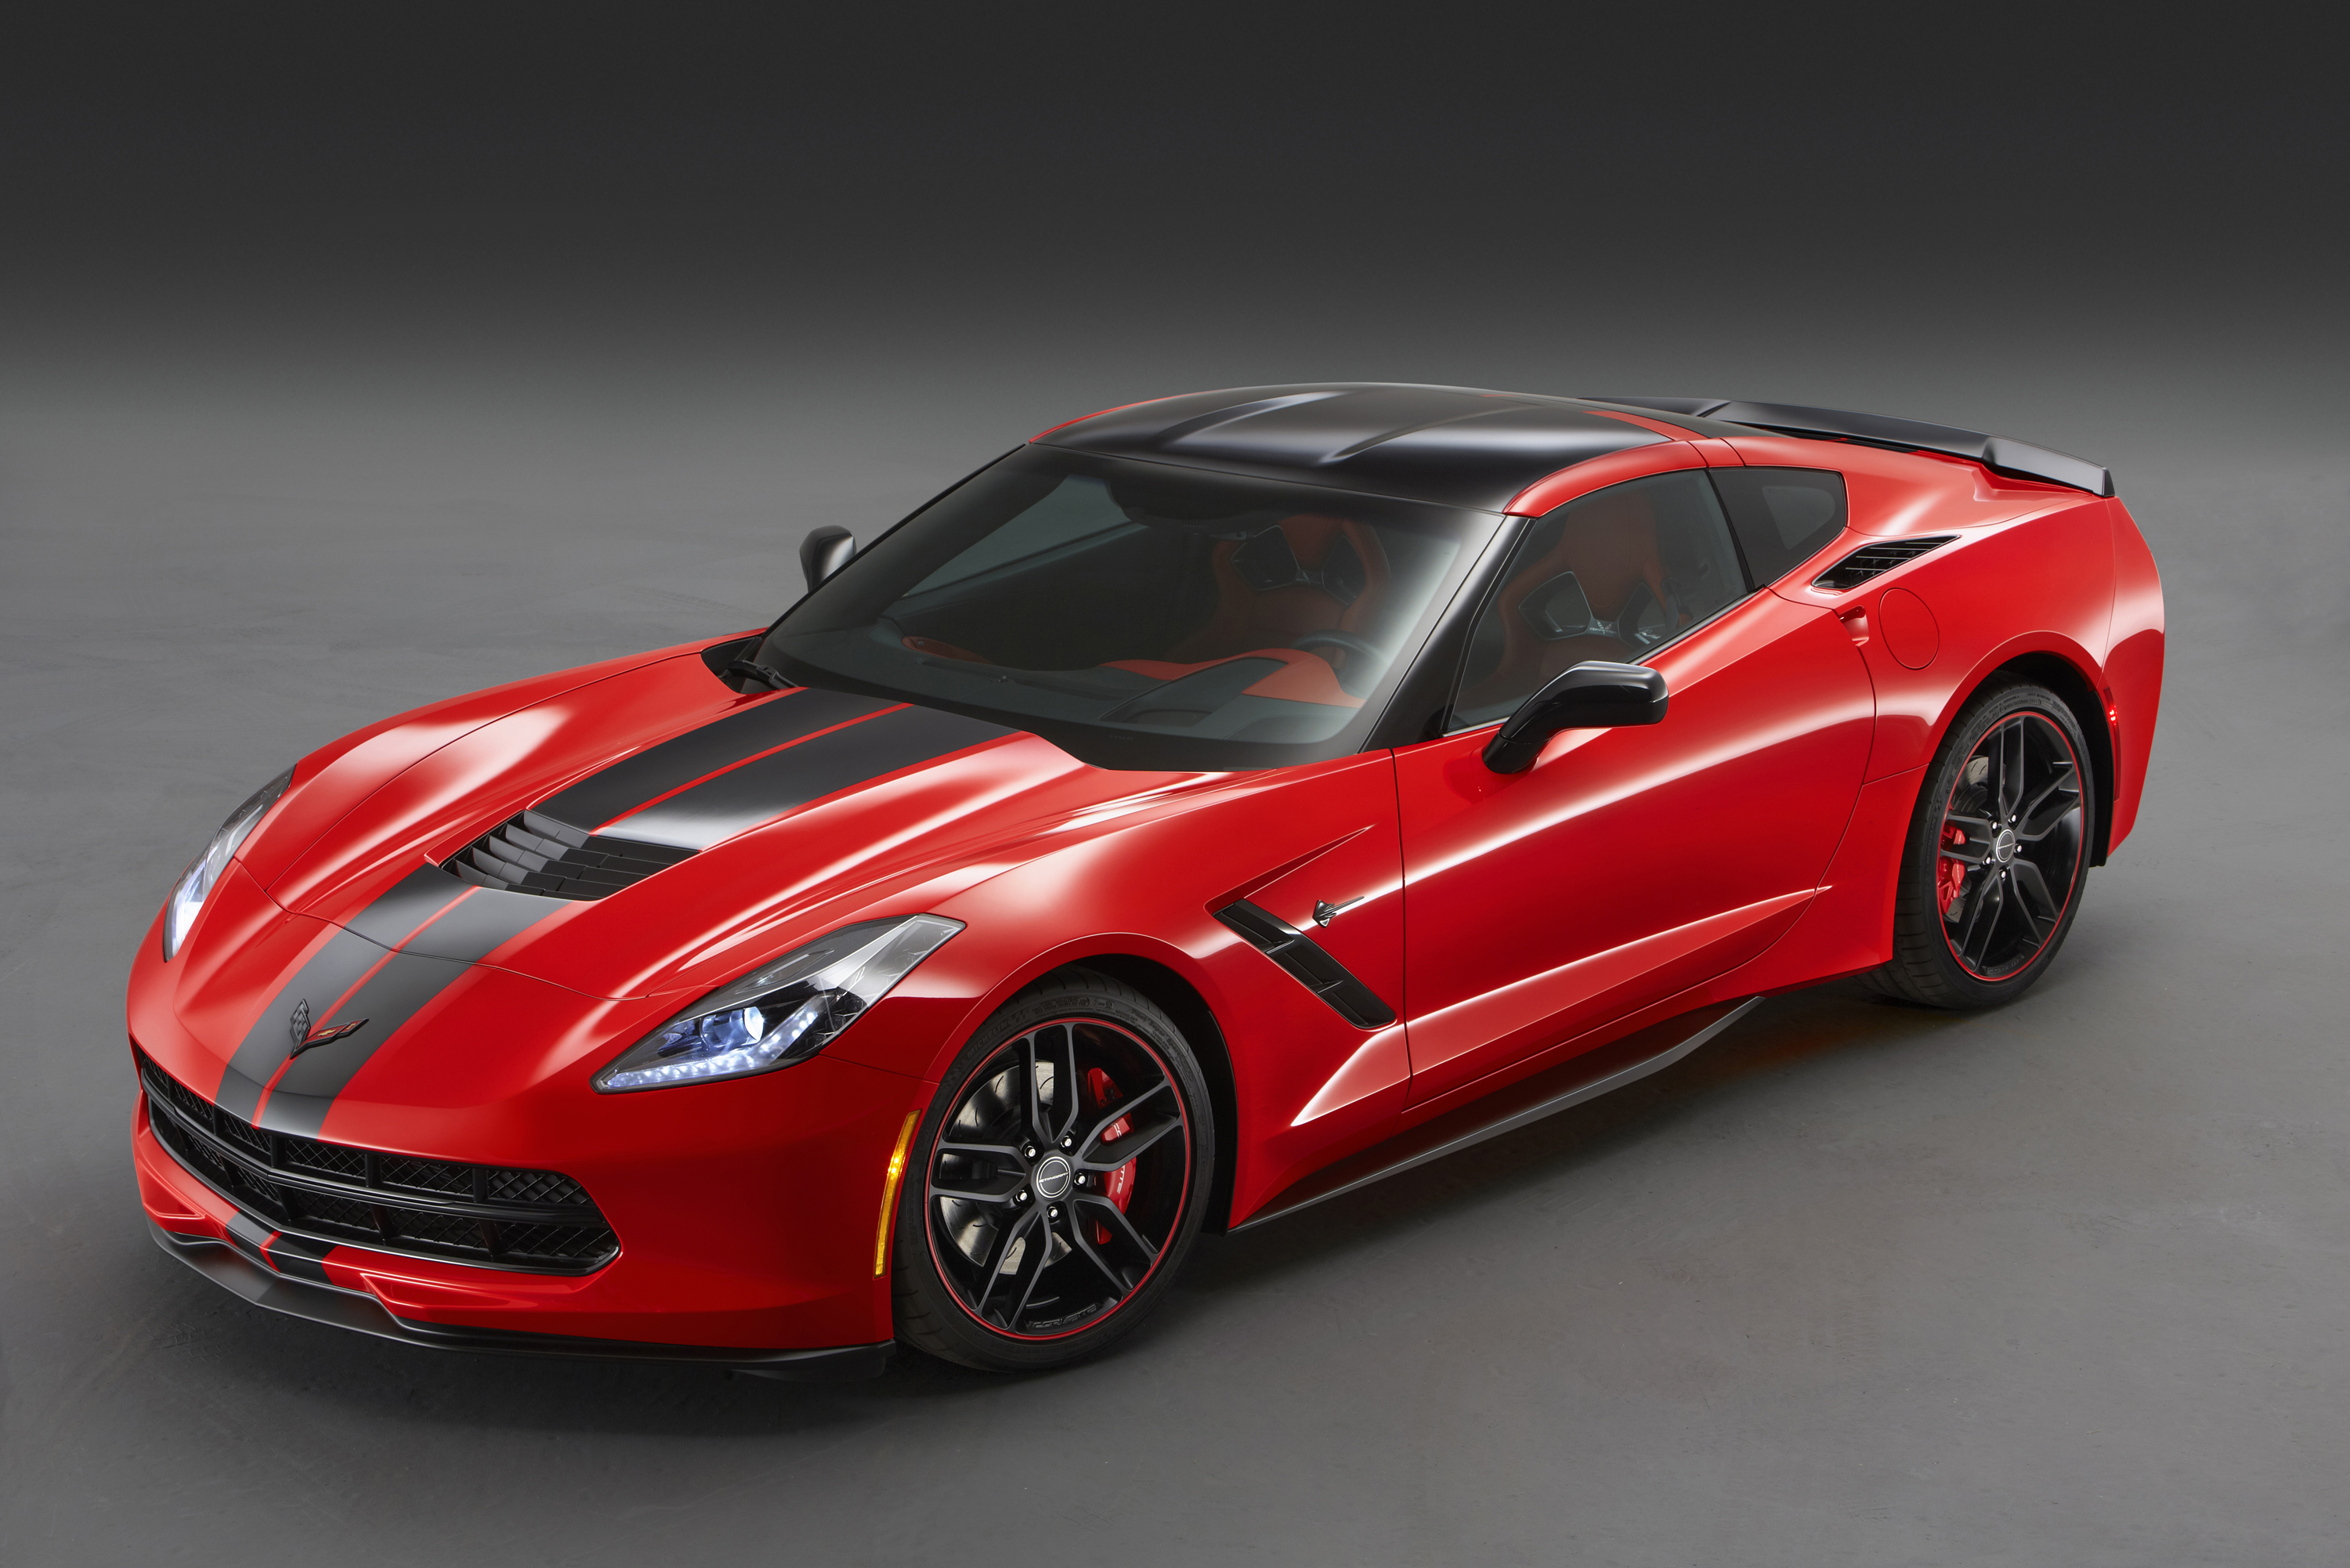 2015 Corvette Offers Atlantic, Pacific Design Packages